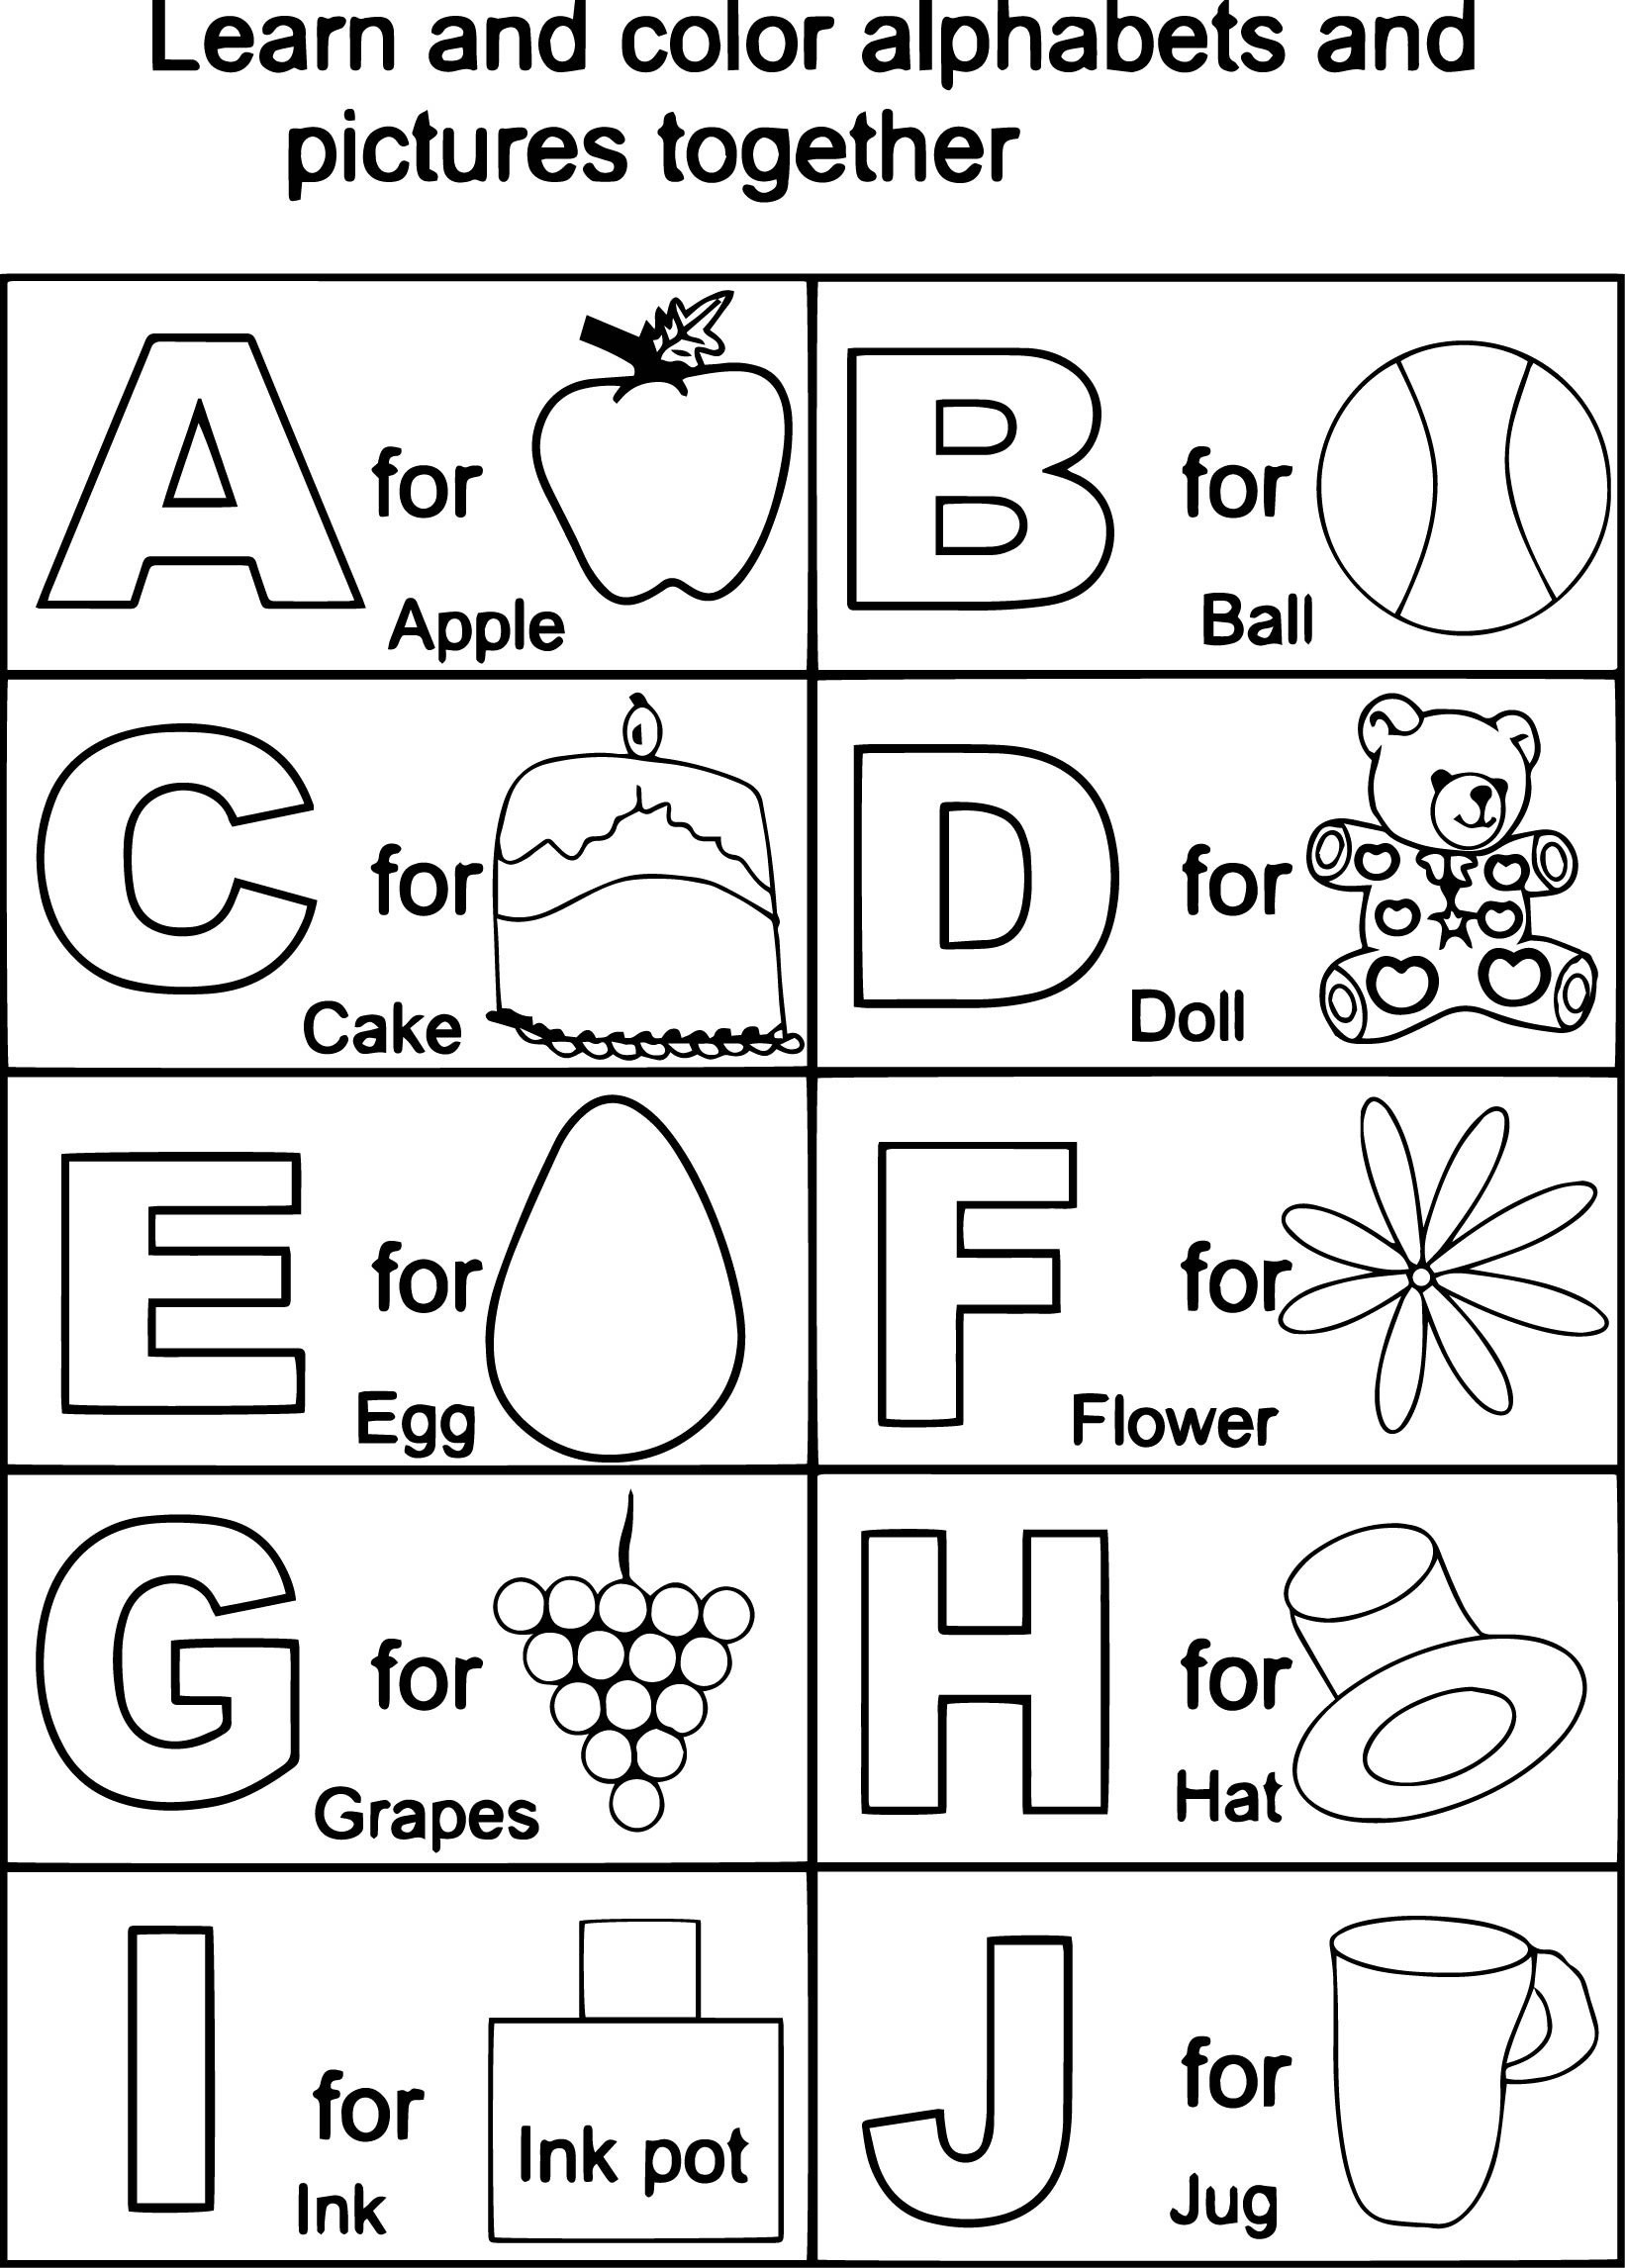 coloring alphabet online 60 alphabet flash cards to print for making learning fun alphabet coloring online